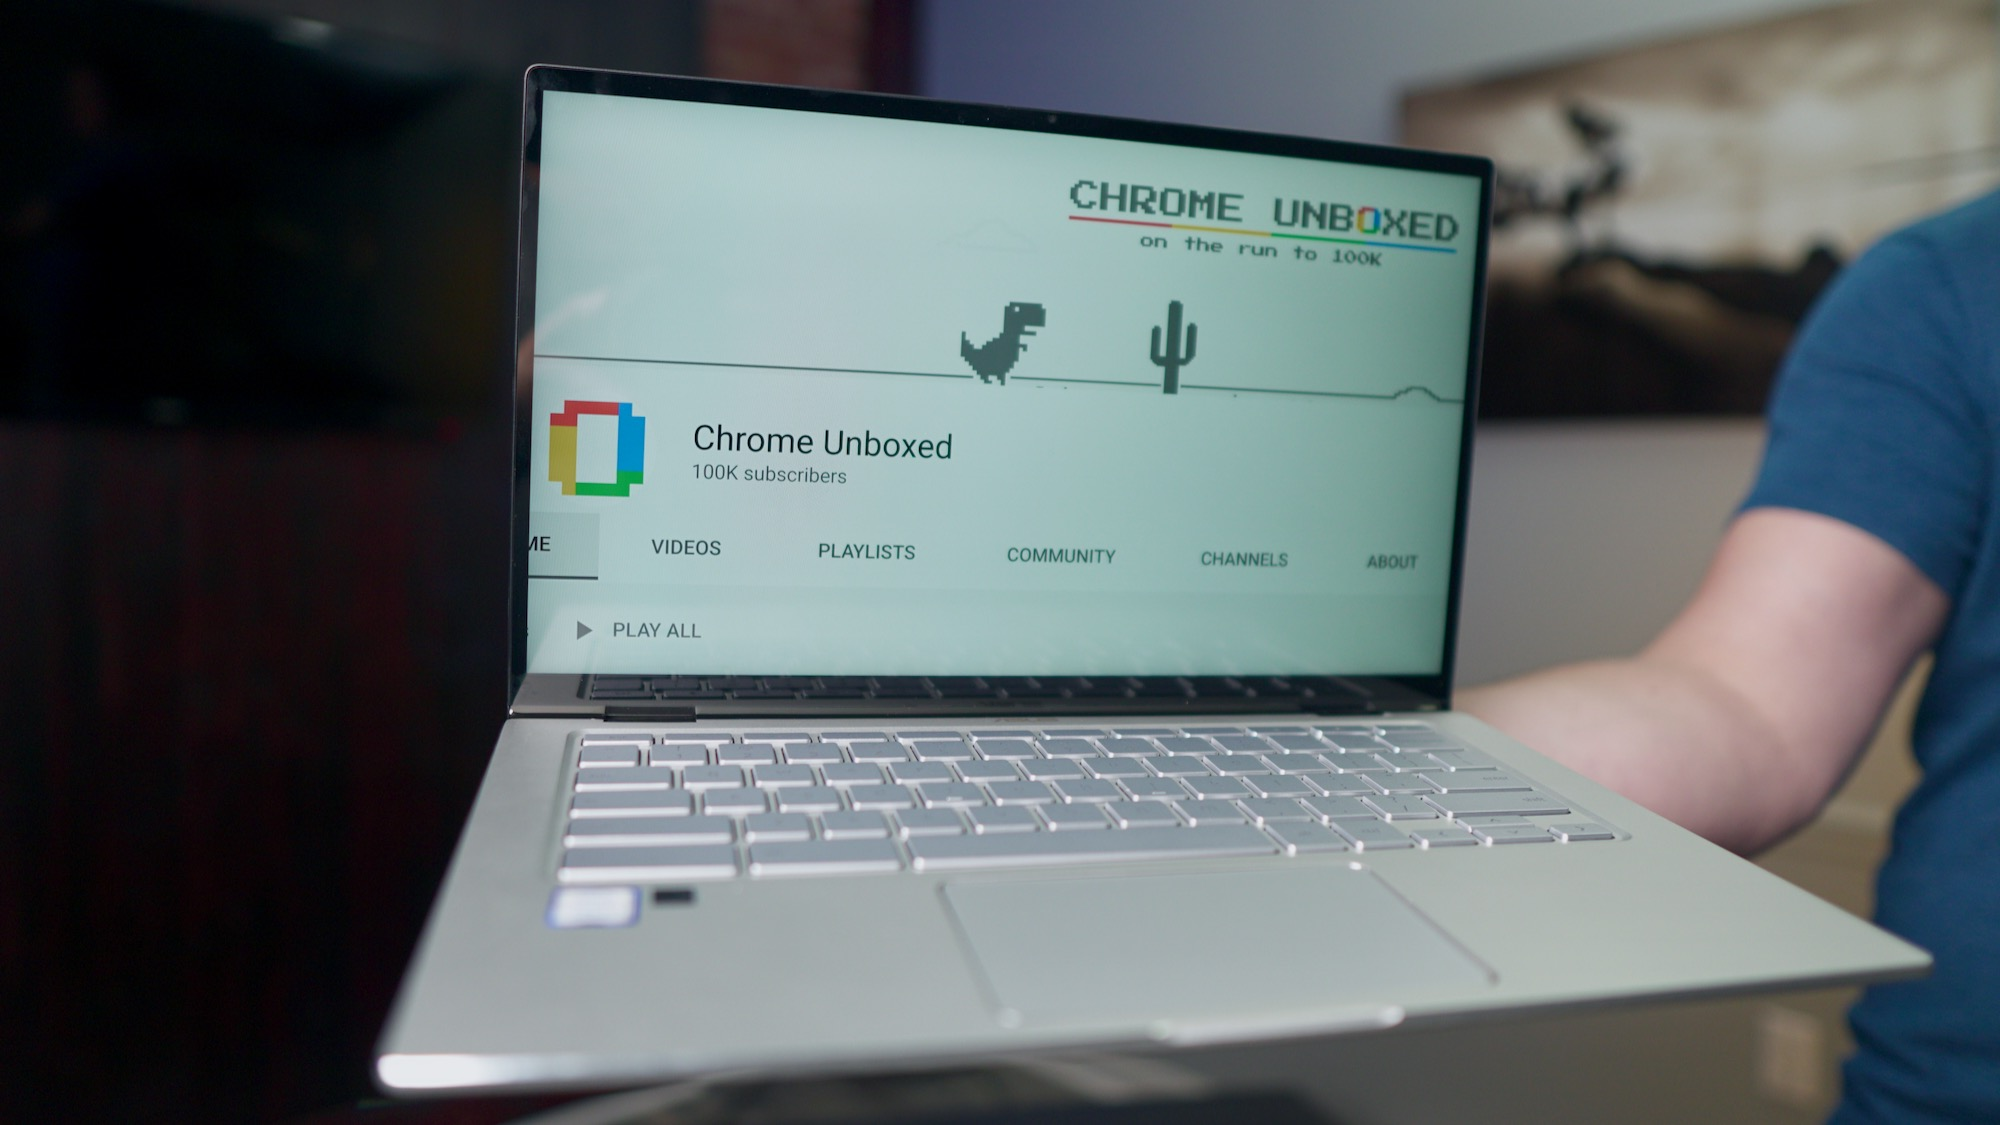 The Chrome Unboxed YouTube channel has passed 100,000 subscribers